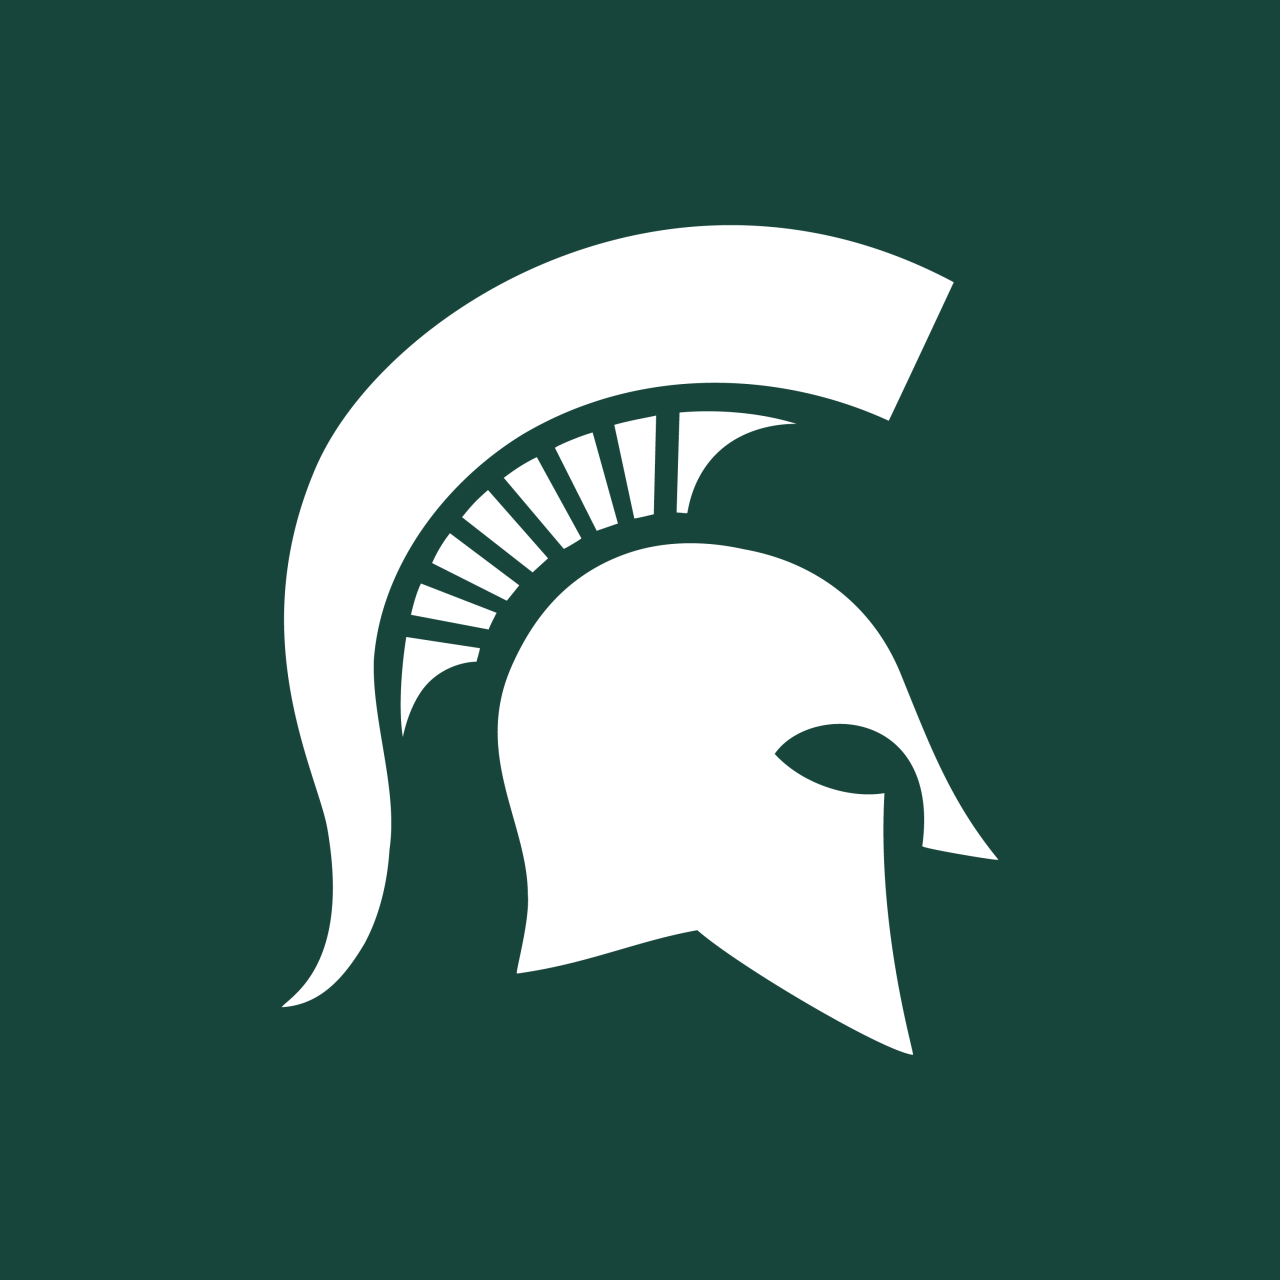 Michigan State Spartans Ncaa Designer Unknown Firm N A Year Logocore Michigan State Logo Michigan State Spartans Michigan State